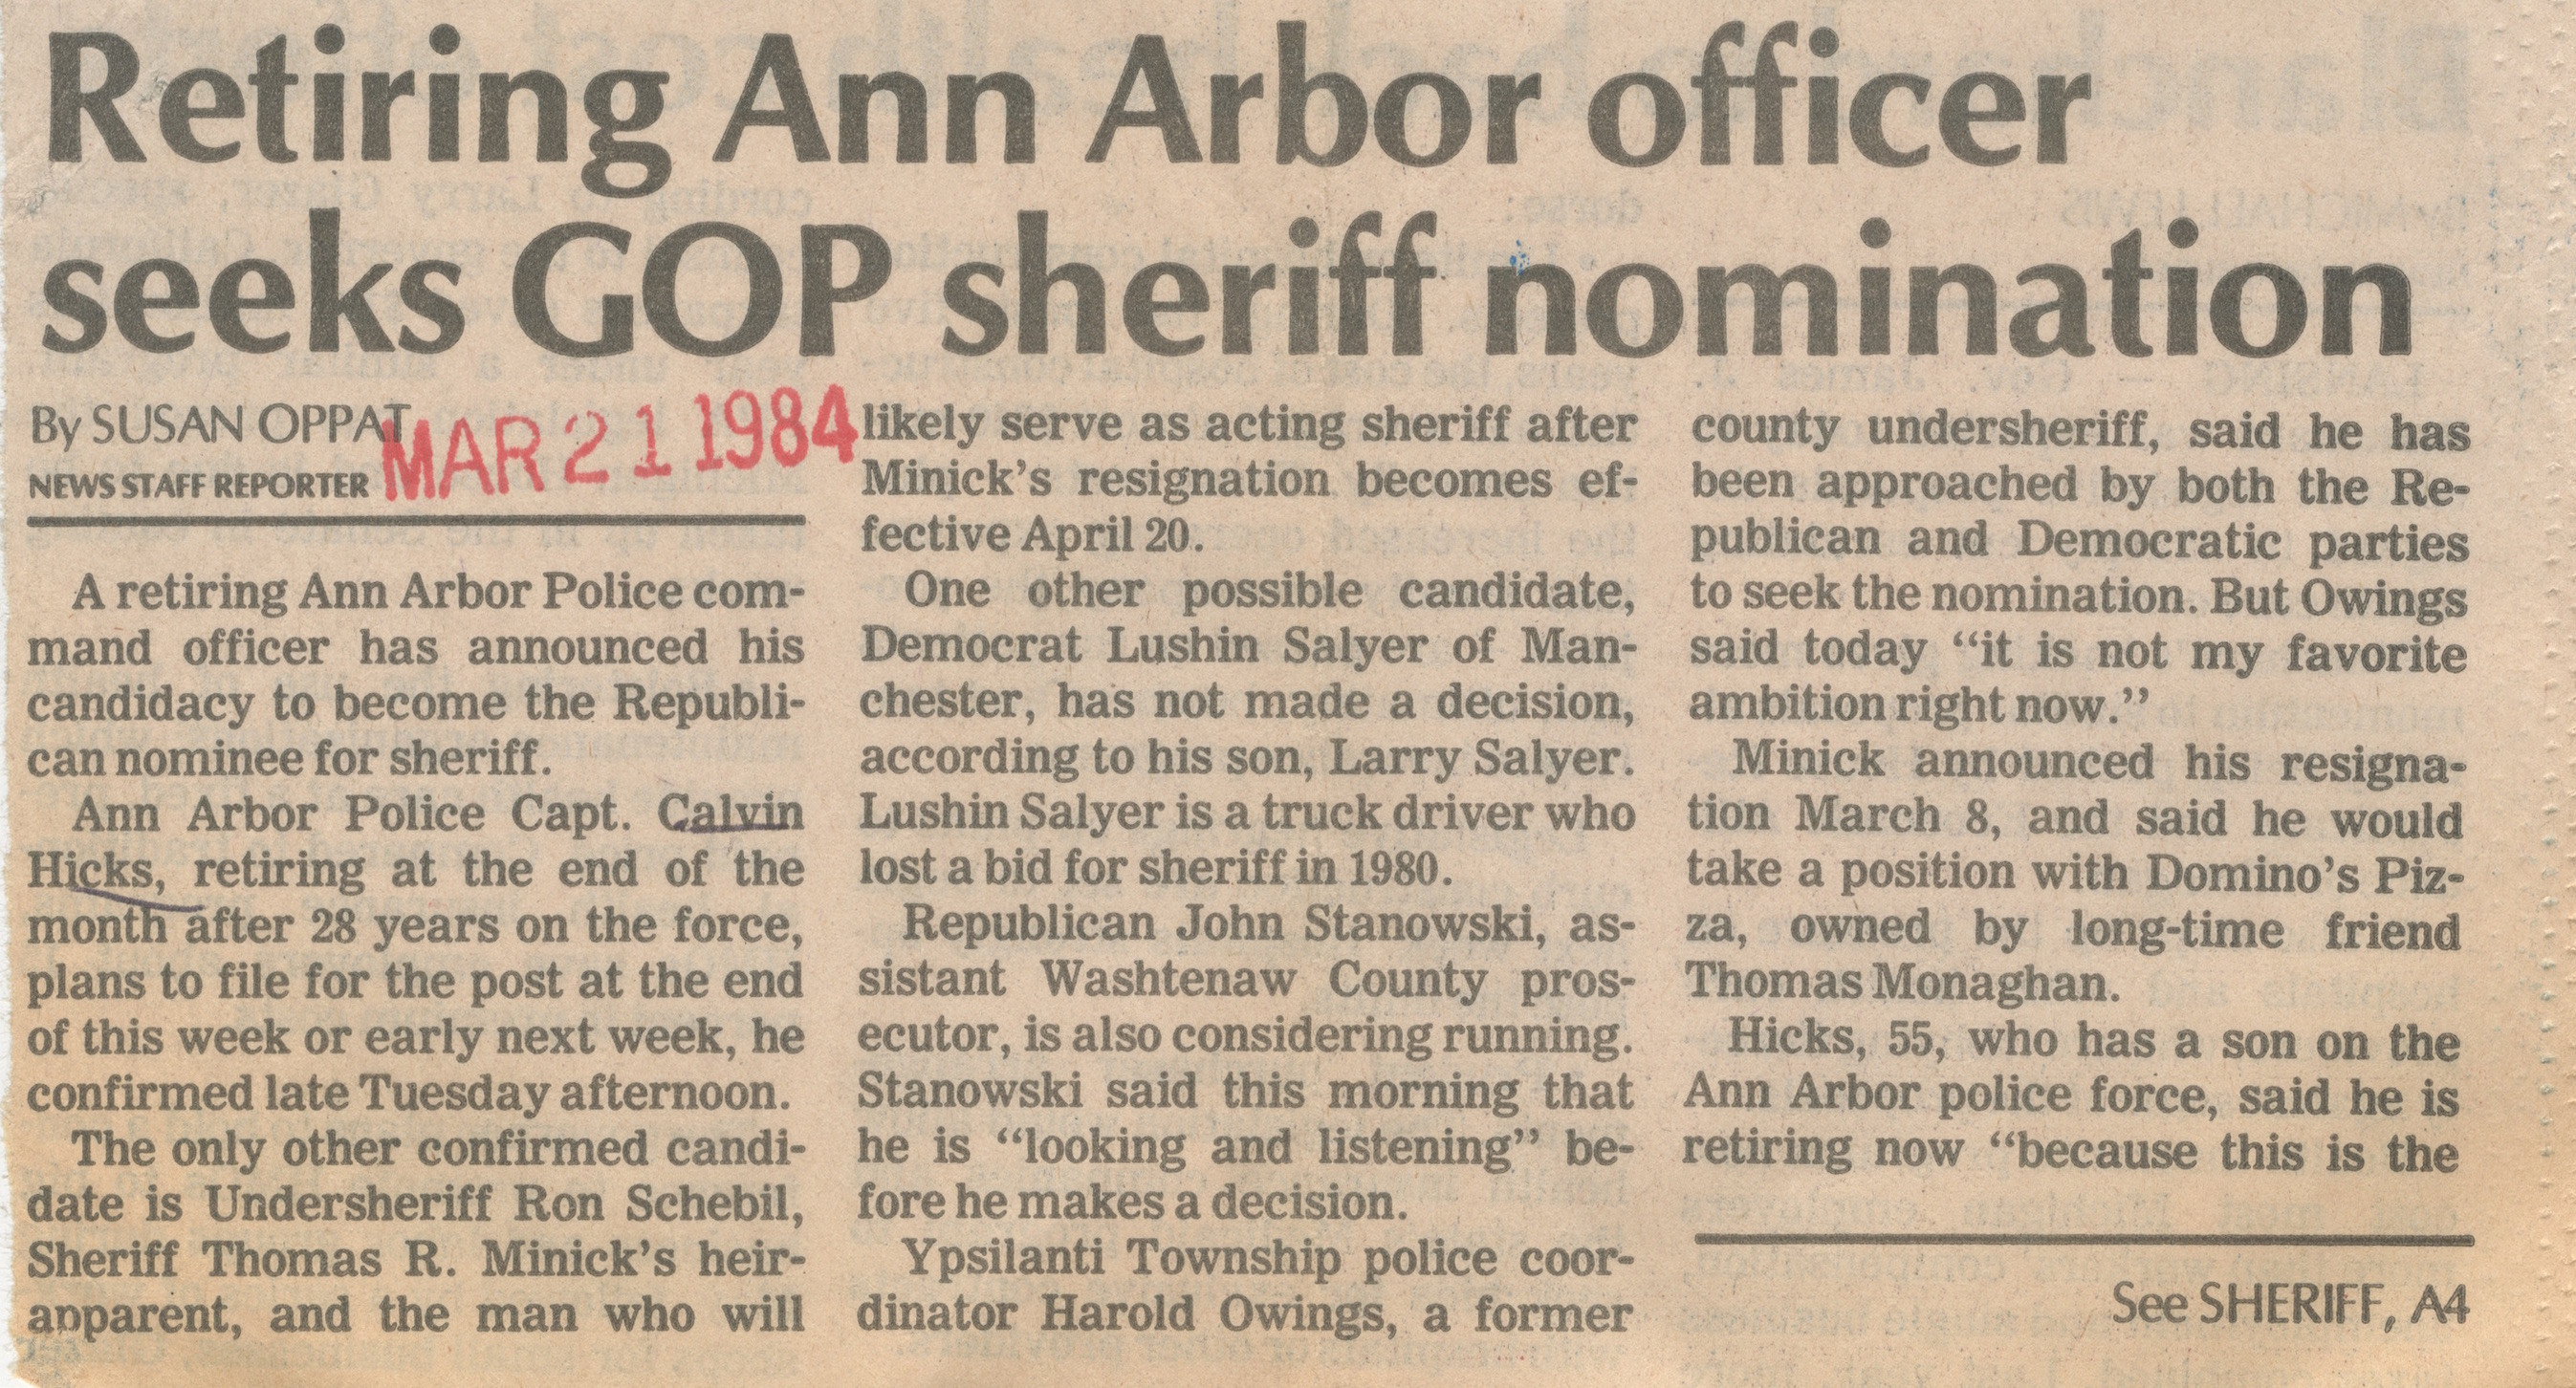 Retiring Ann Arbor Officer Seeks GOP Sheriff Nomination image